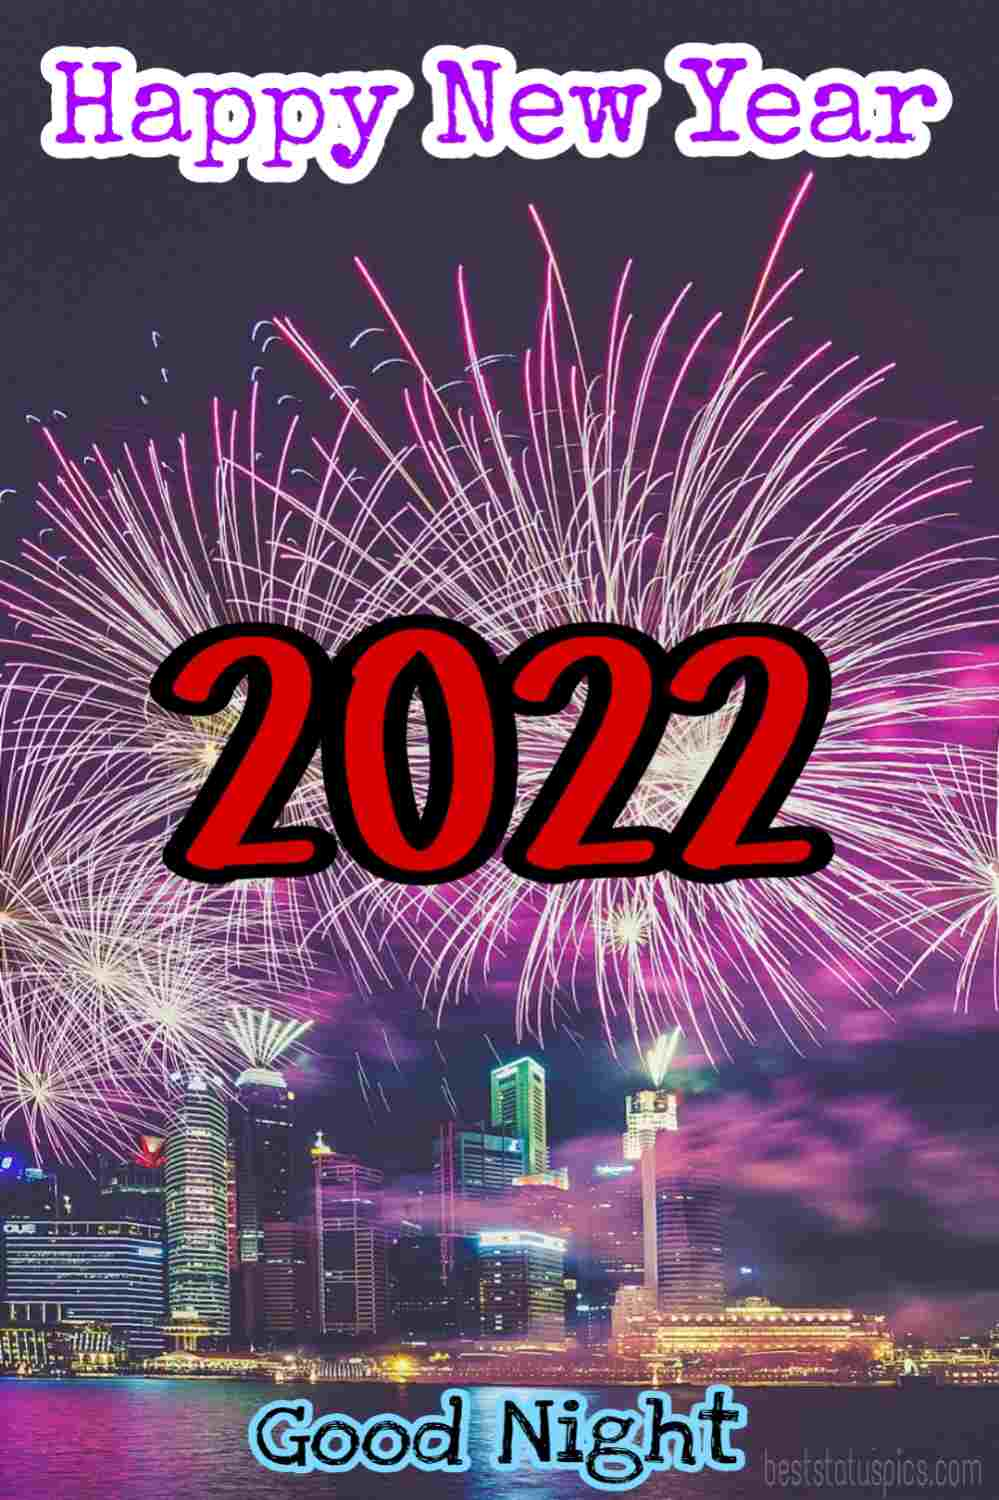 Happy new year 2022 and Good night HD wallpaper